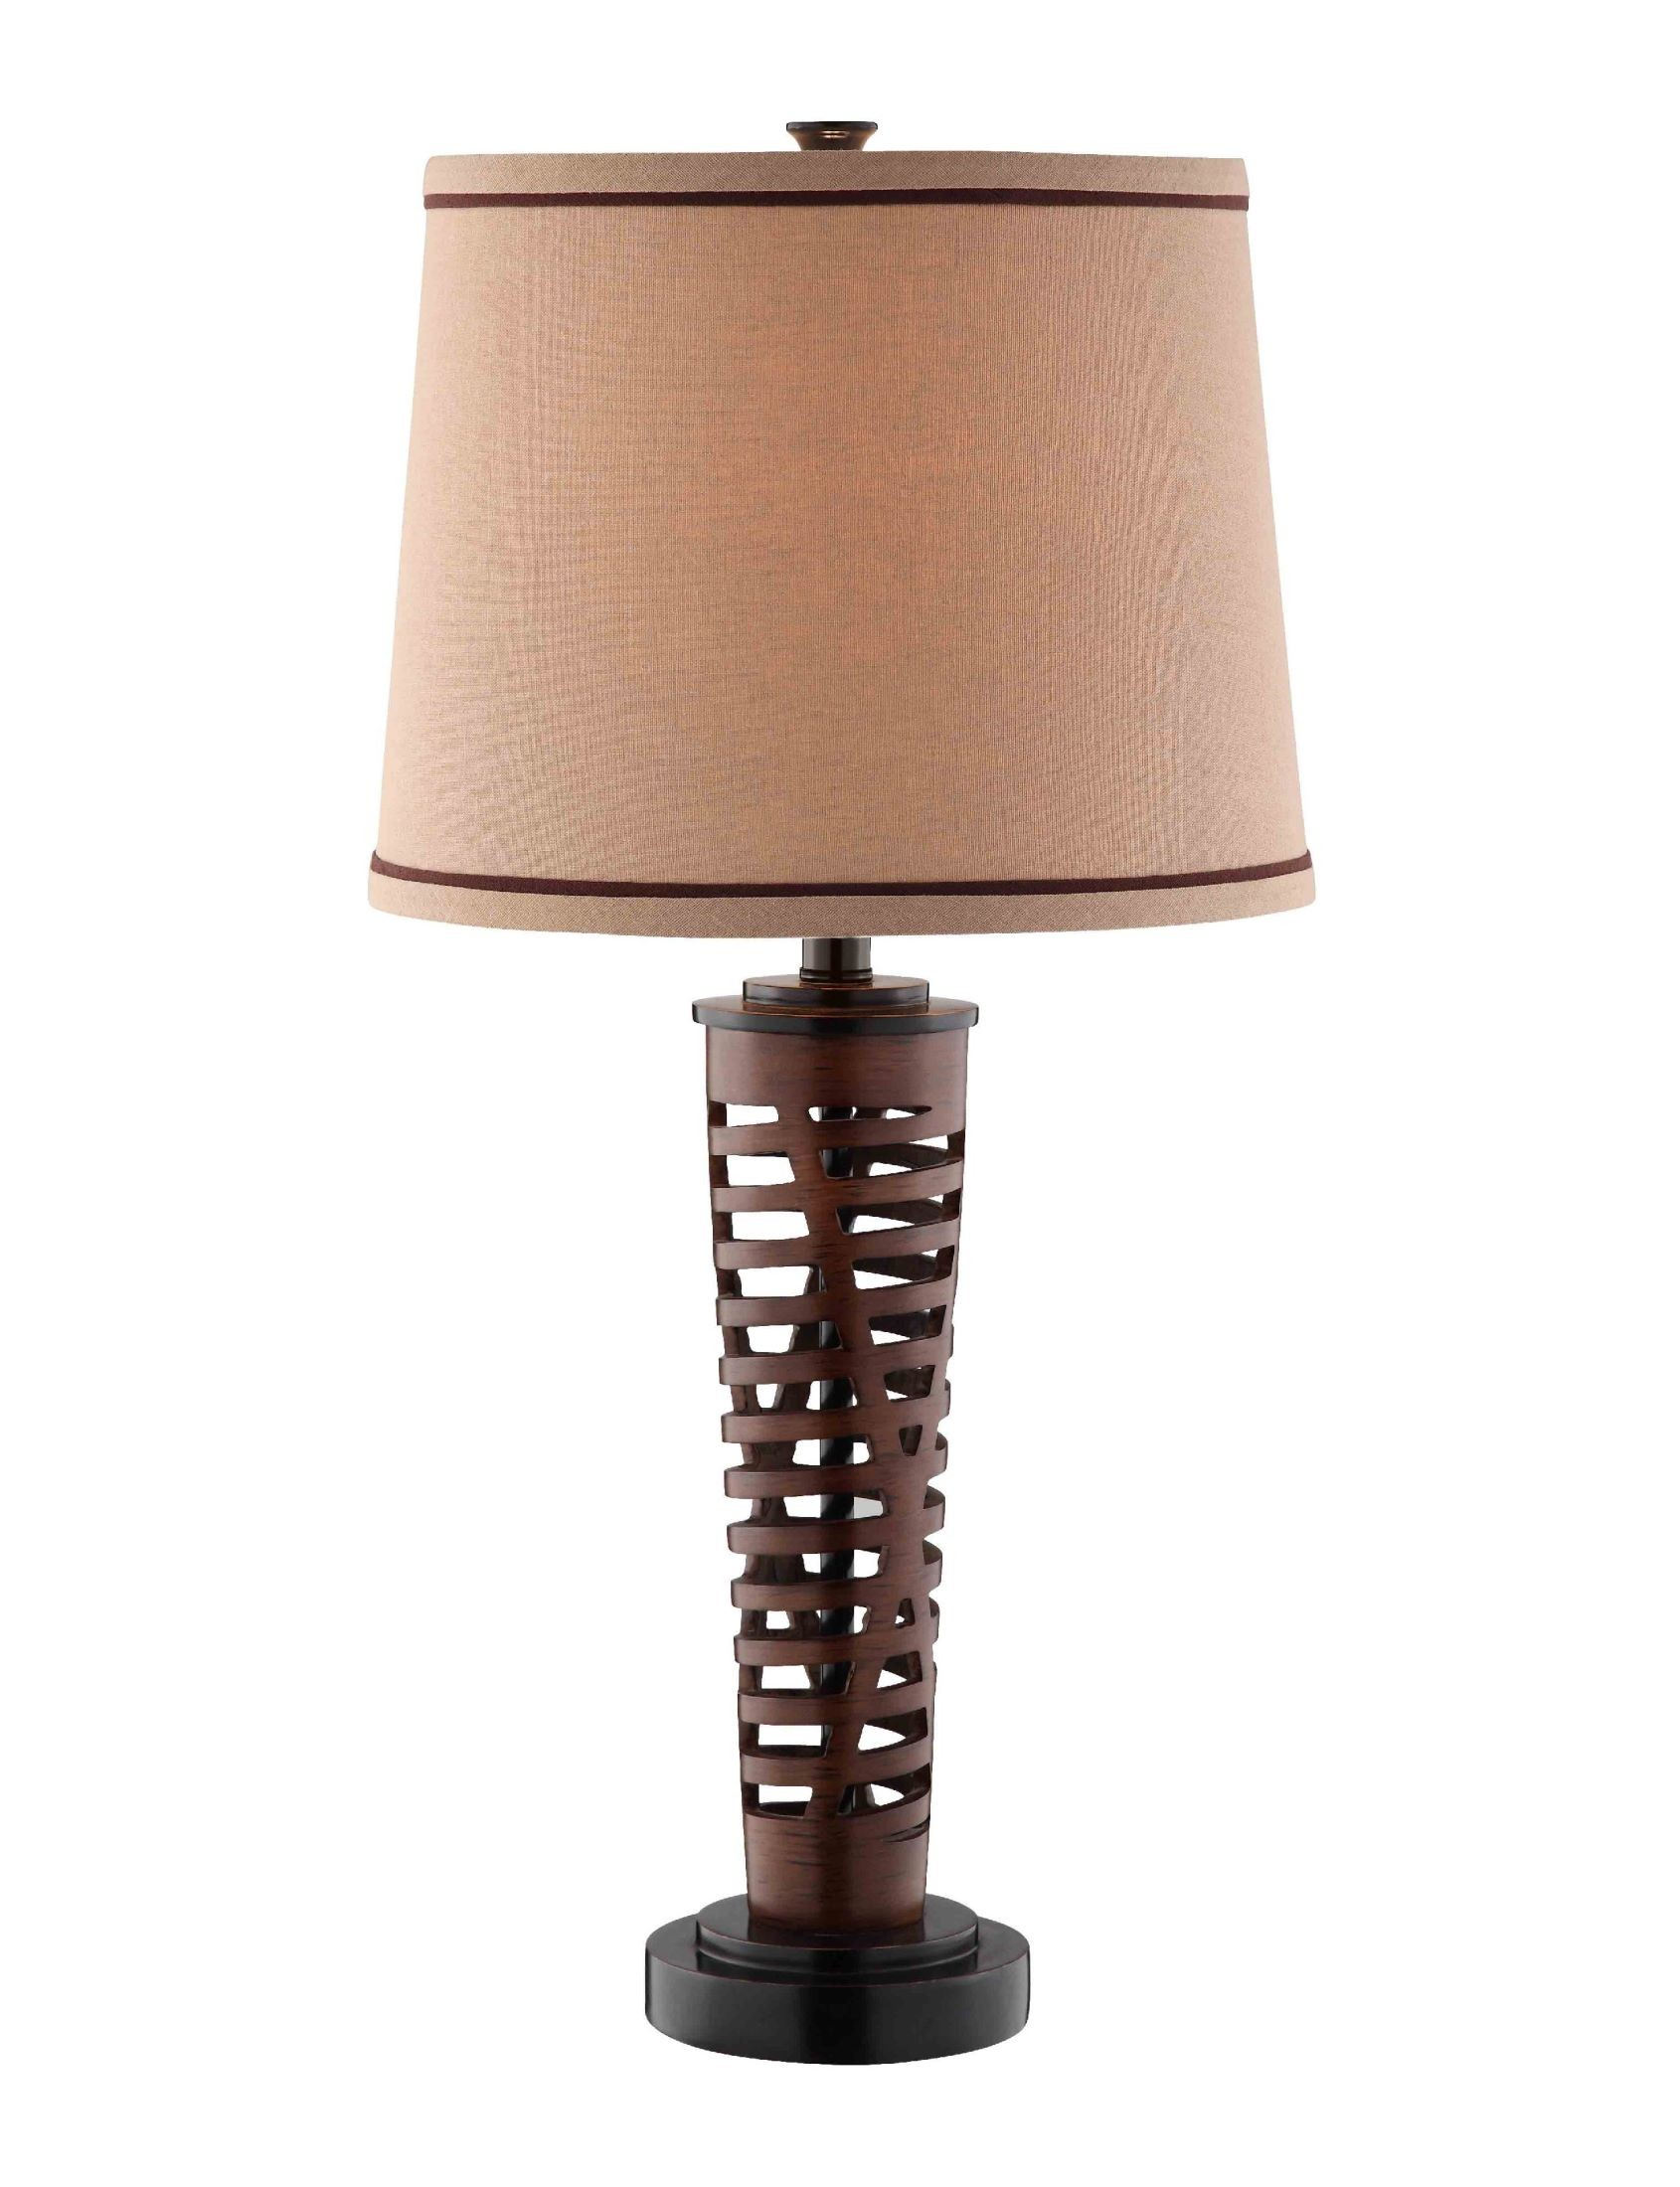 wood colored resin table lamp from steinworld 99598 coleman furniture. Black Bedroom Furniture Sets. Home Design Ideas